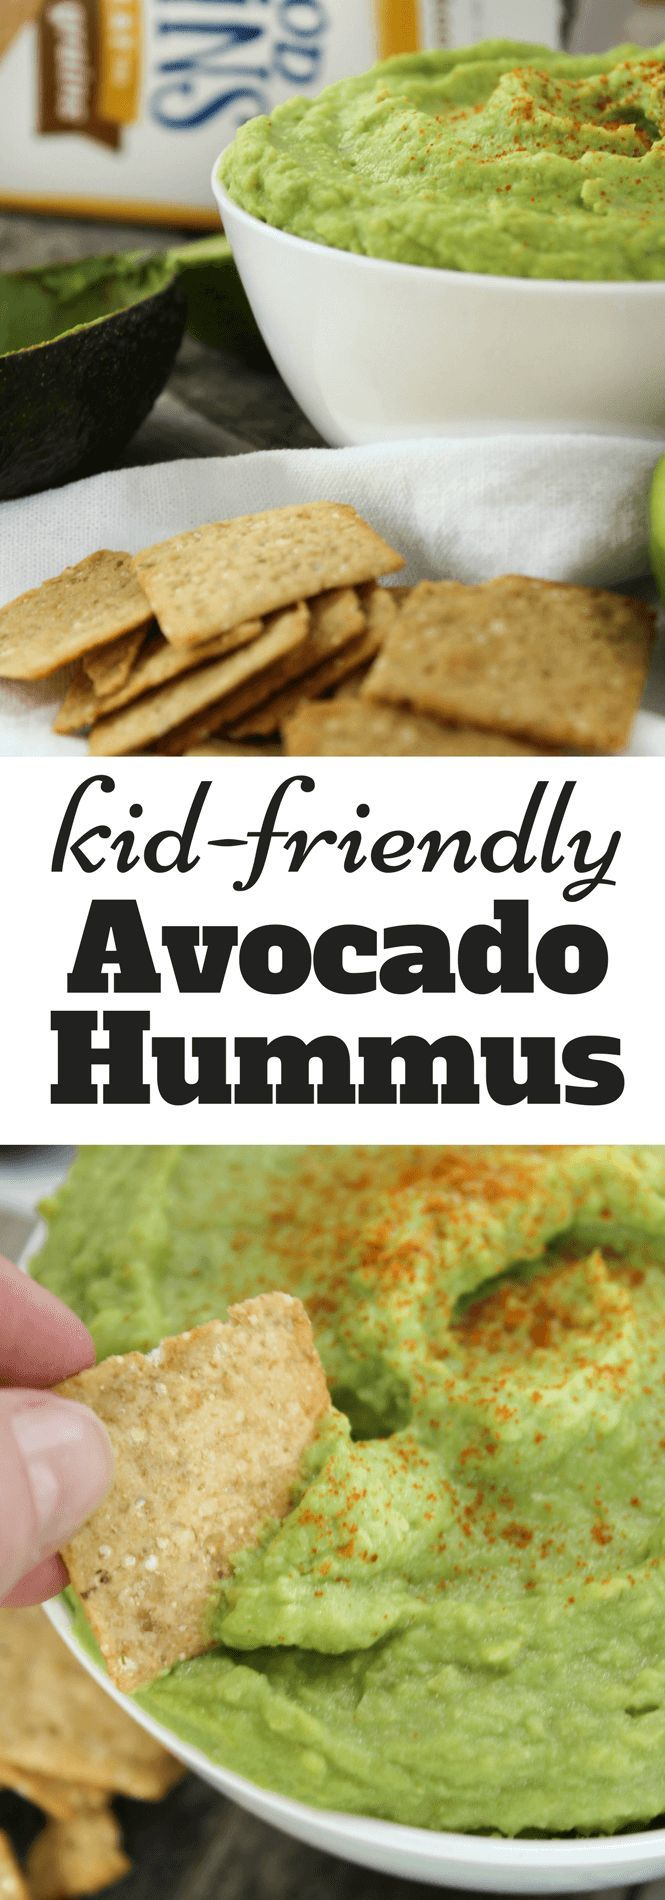 Avocado Hummus paired with GOOD THiNS | #TrySomeTHINGood #ad #collectiveBias, @krogerco , snacks, avocado, hummus, dips, kid-friendly recipe